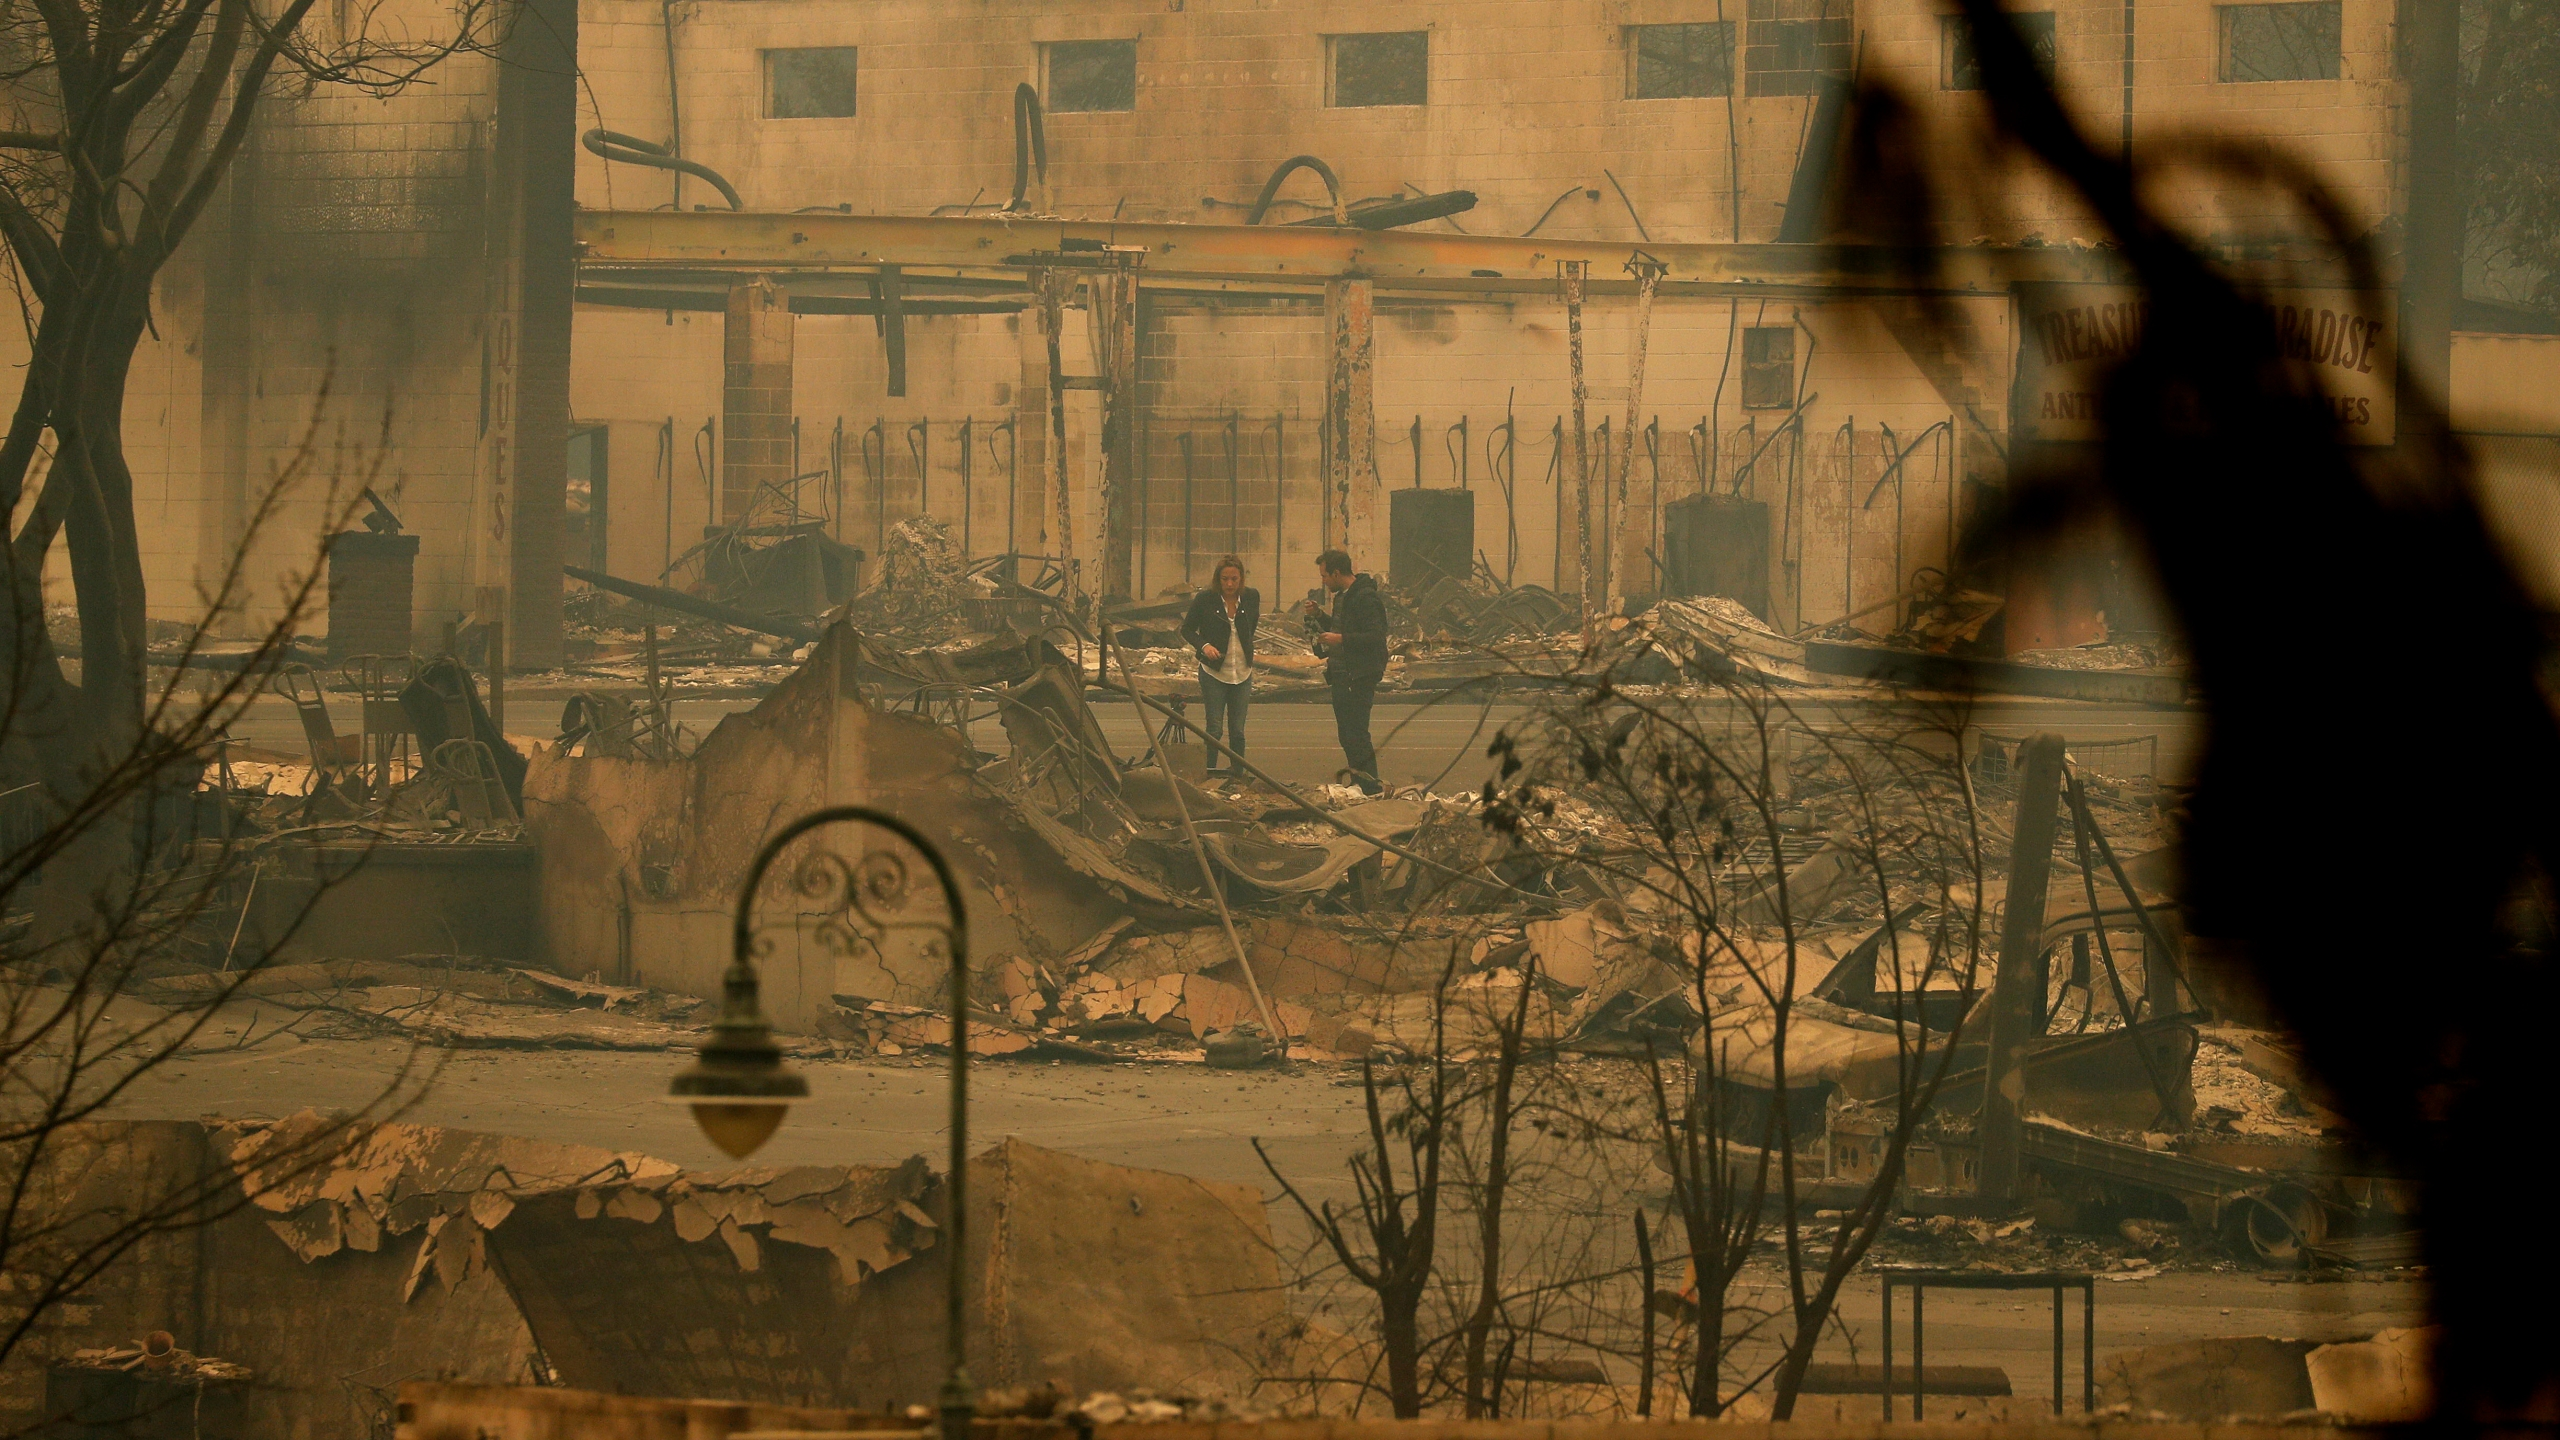 California_Wildfires_Paradise_Lost_00624-159532.jpg50446432